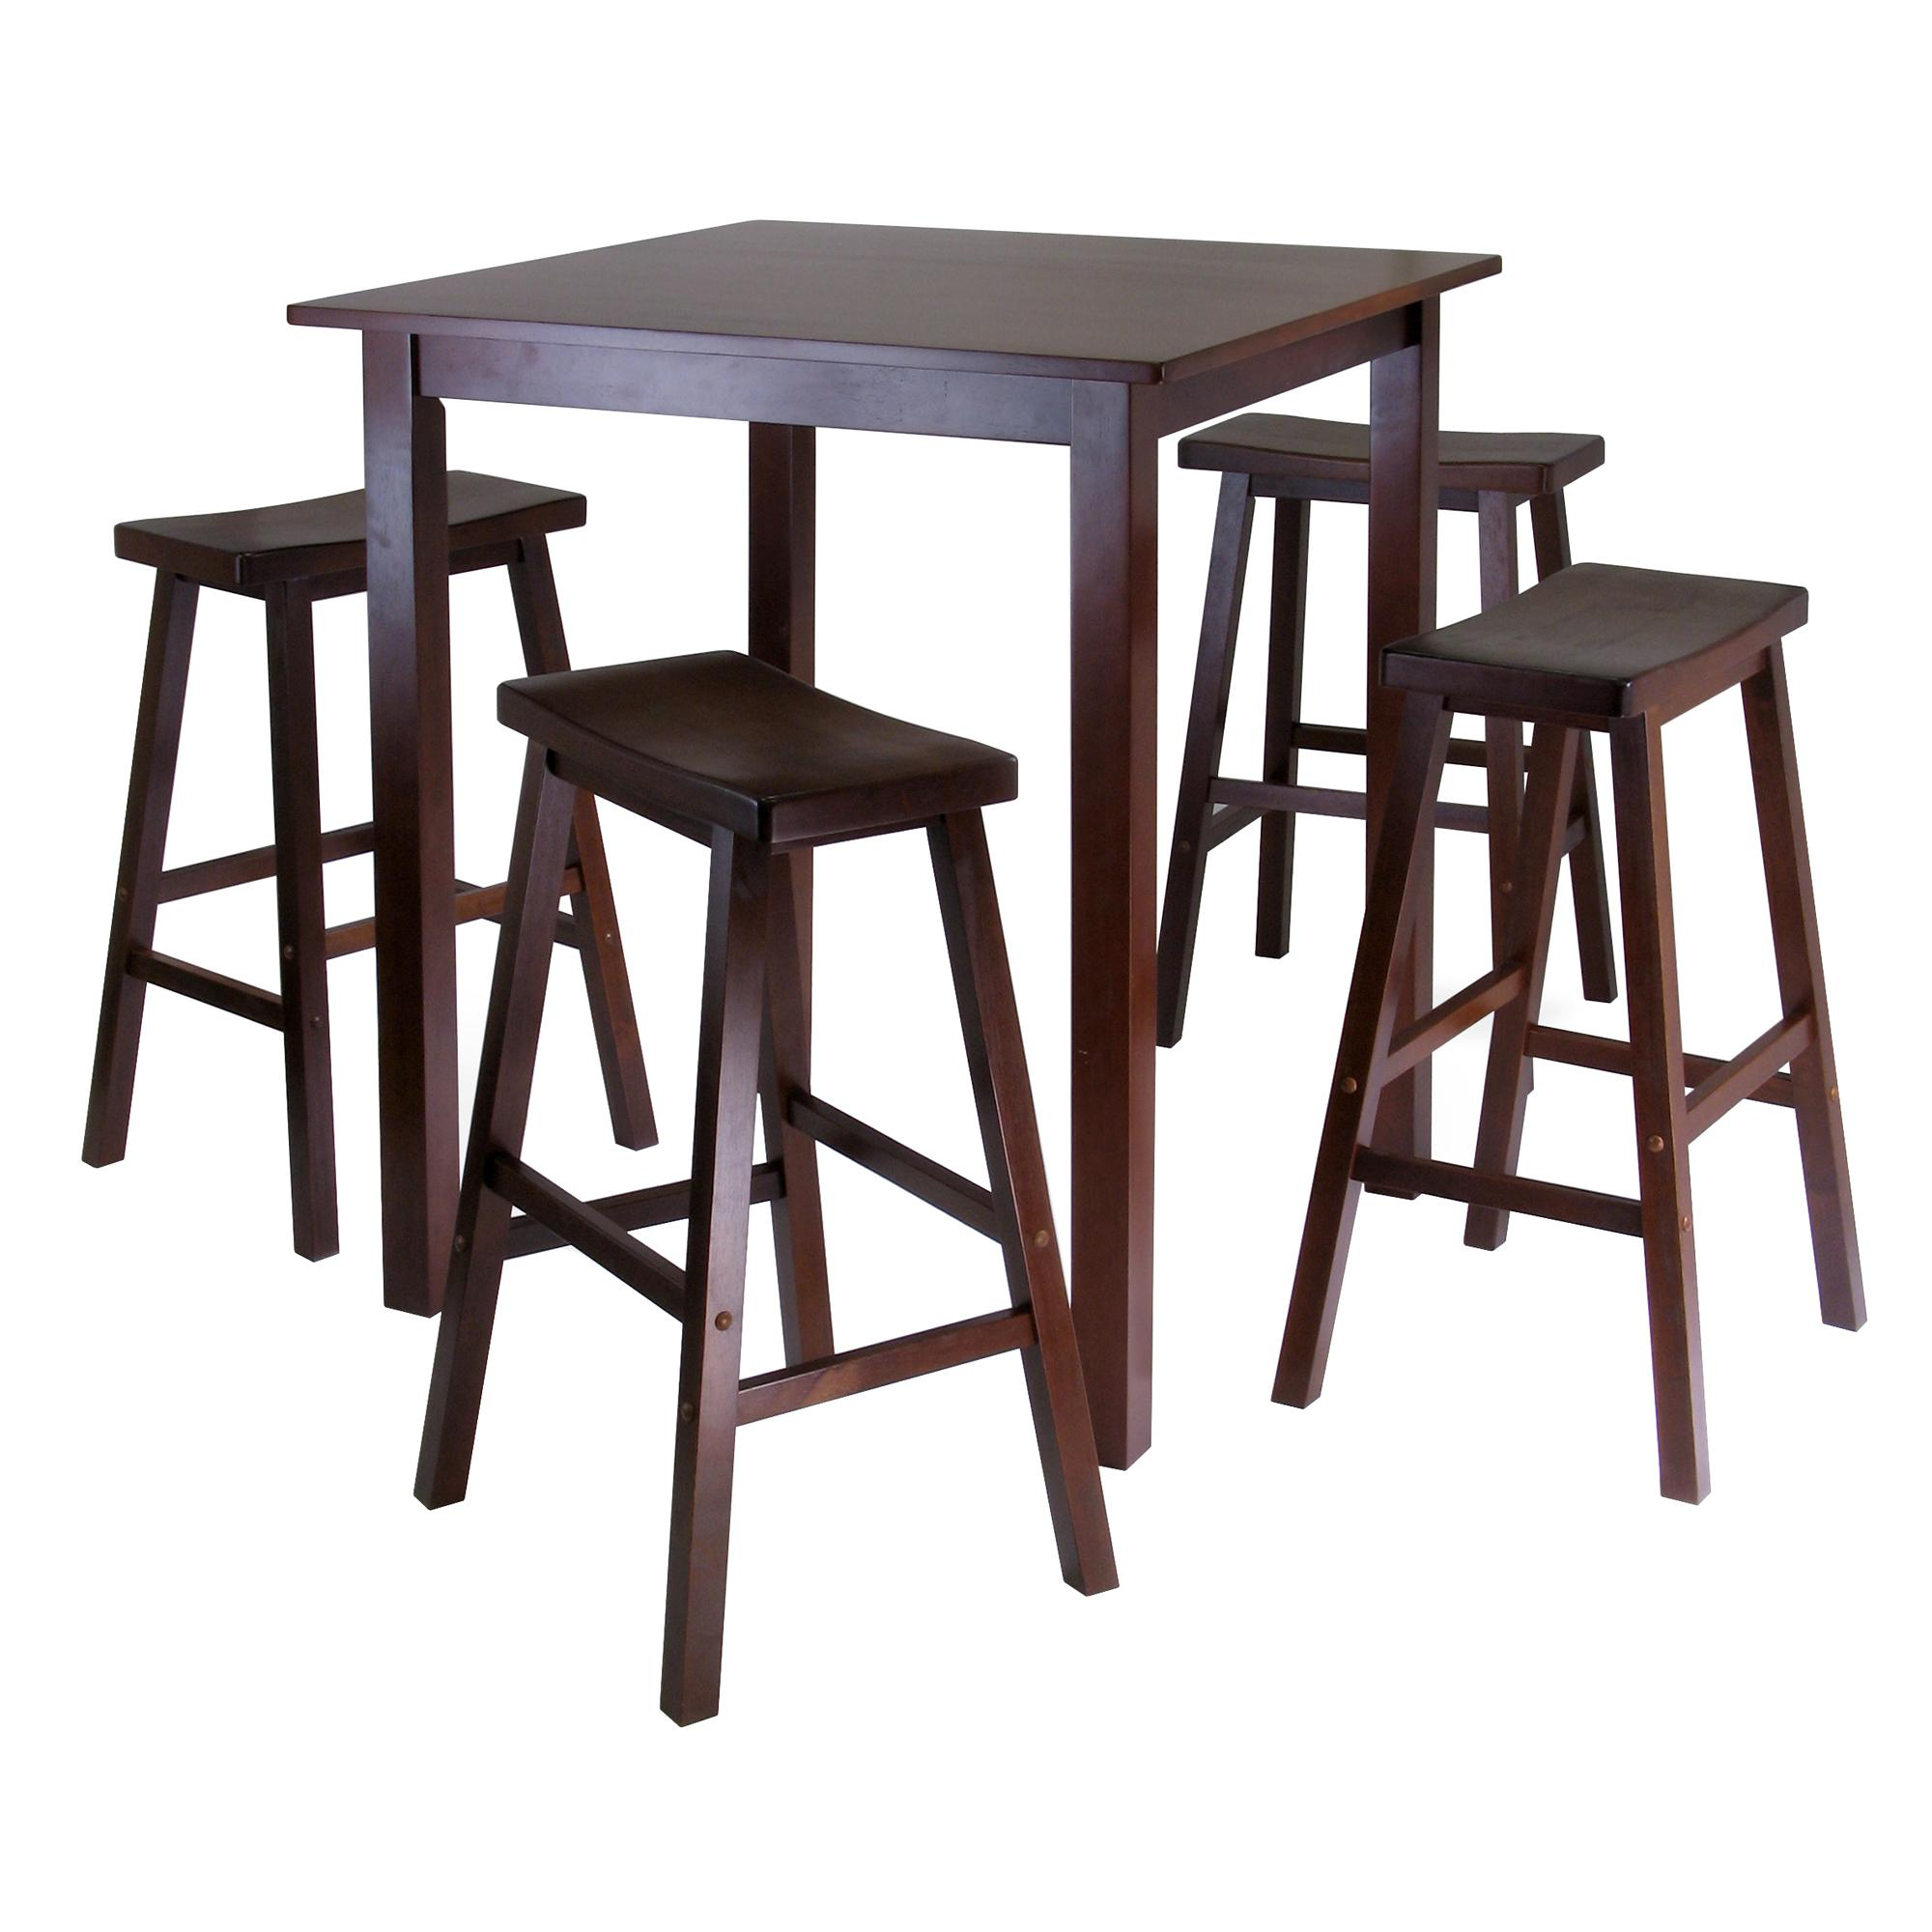 Dining Room Pub Sets Amazon Com Winsome U0027s Parkland 5 Piece Square High Pub  Table Set